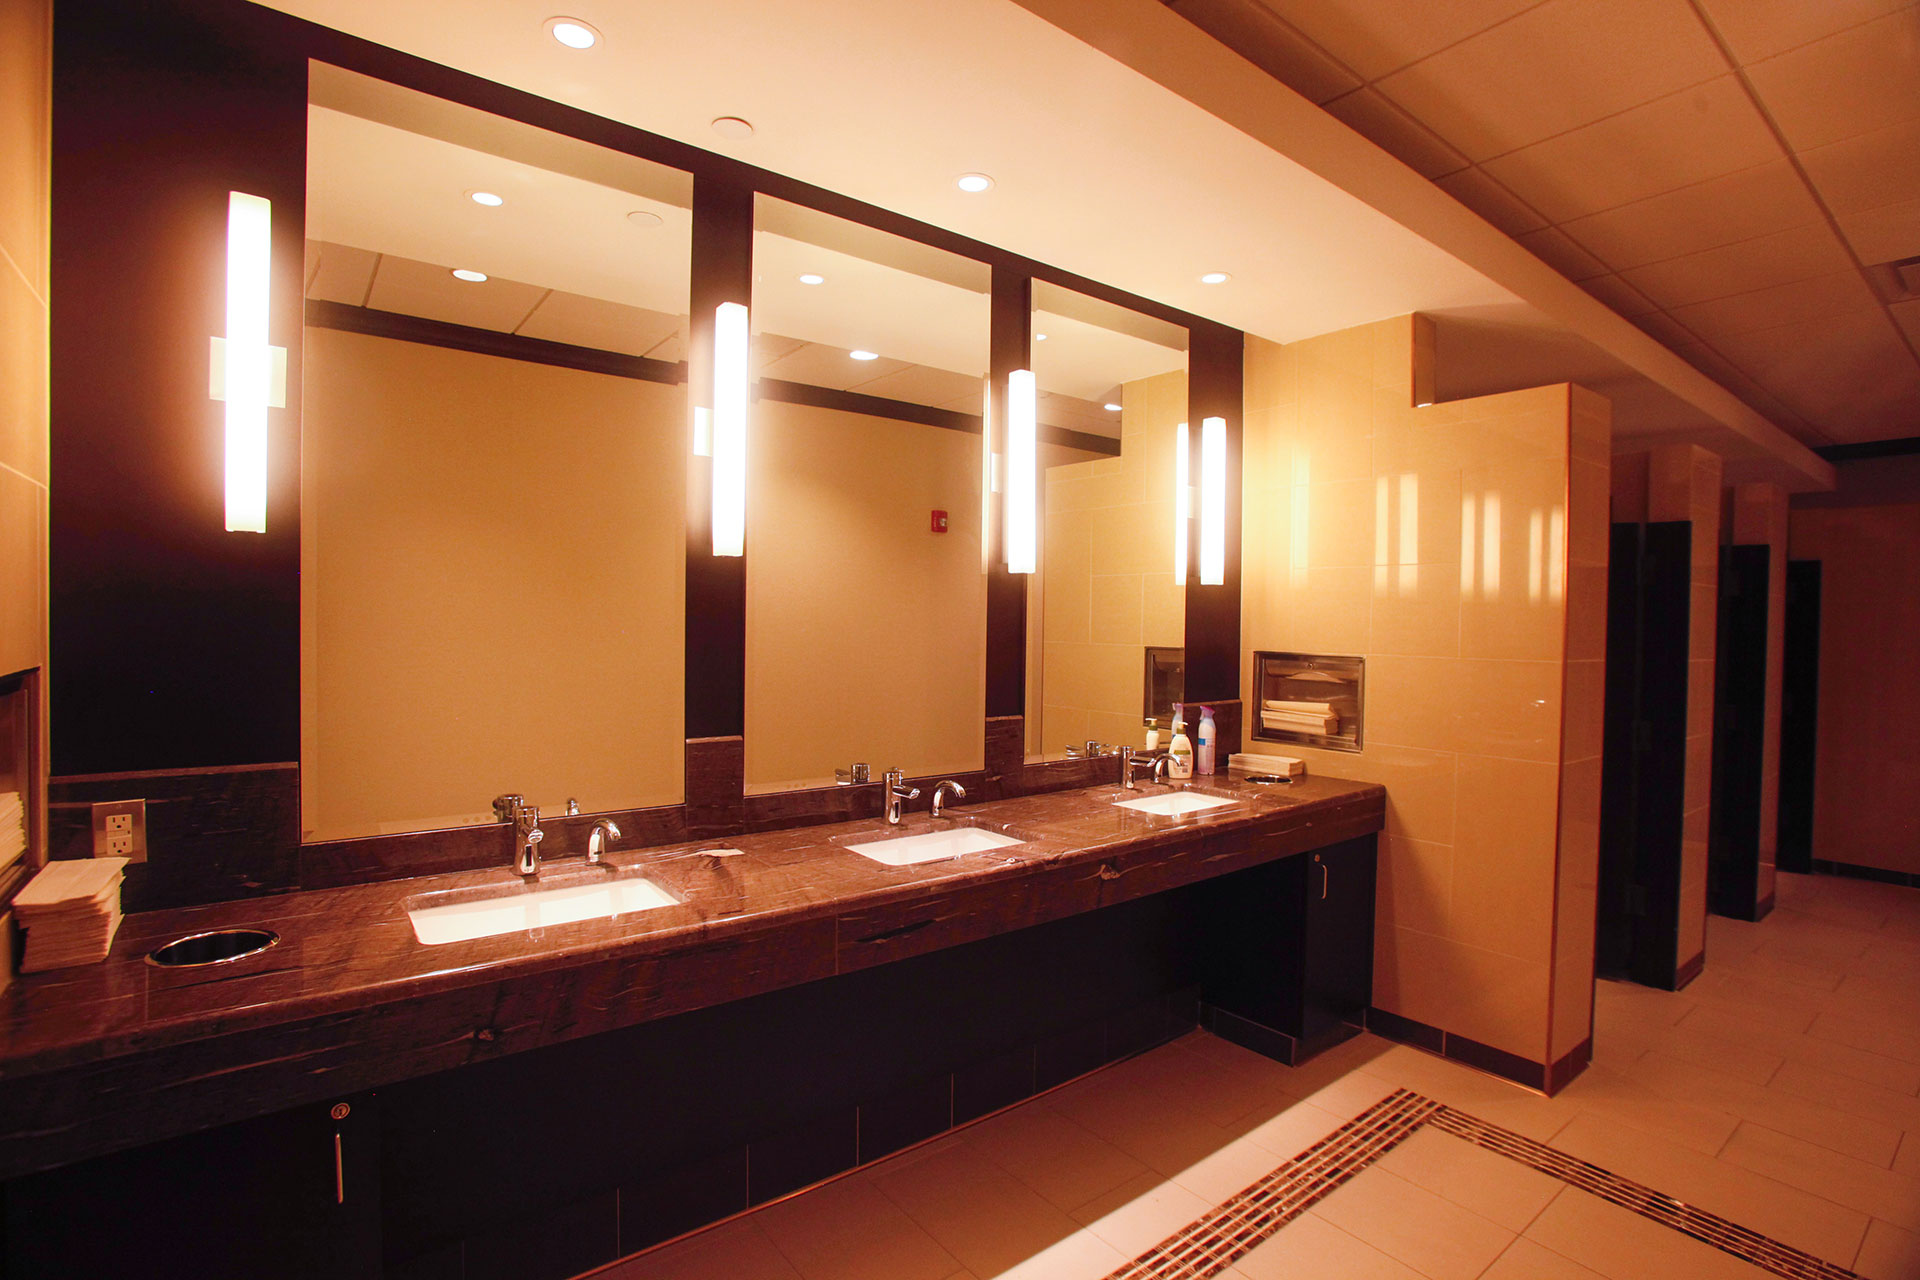 Granite countertop on stained and finished wood veneer cabinets with stained and finished wood veneer/mirror wall.